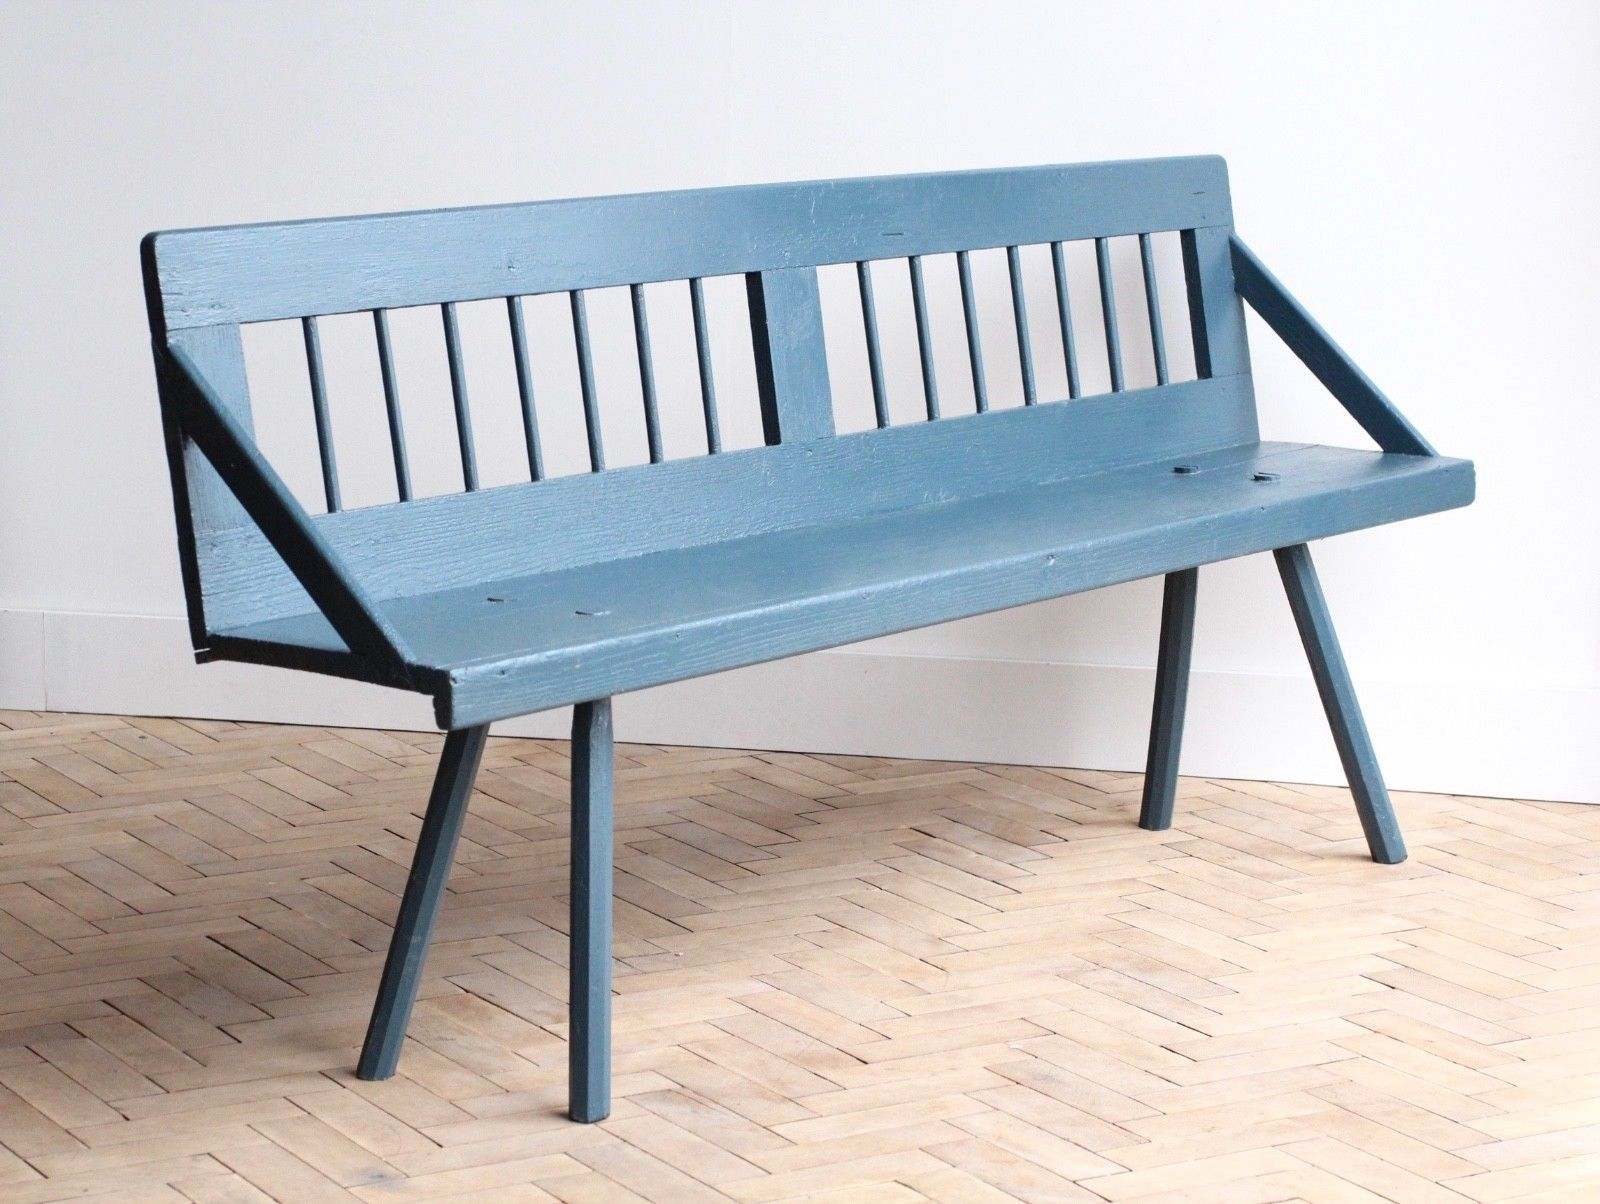 vintage-folky-wooden-blue-painted-garden-bench